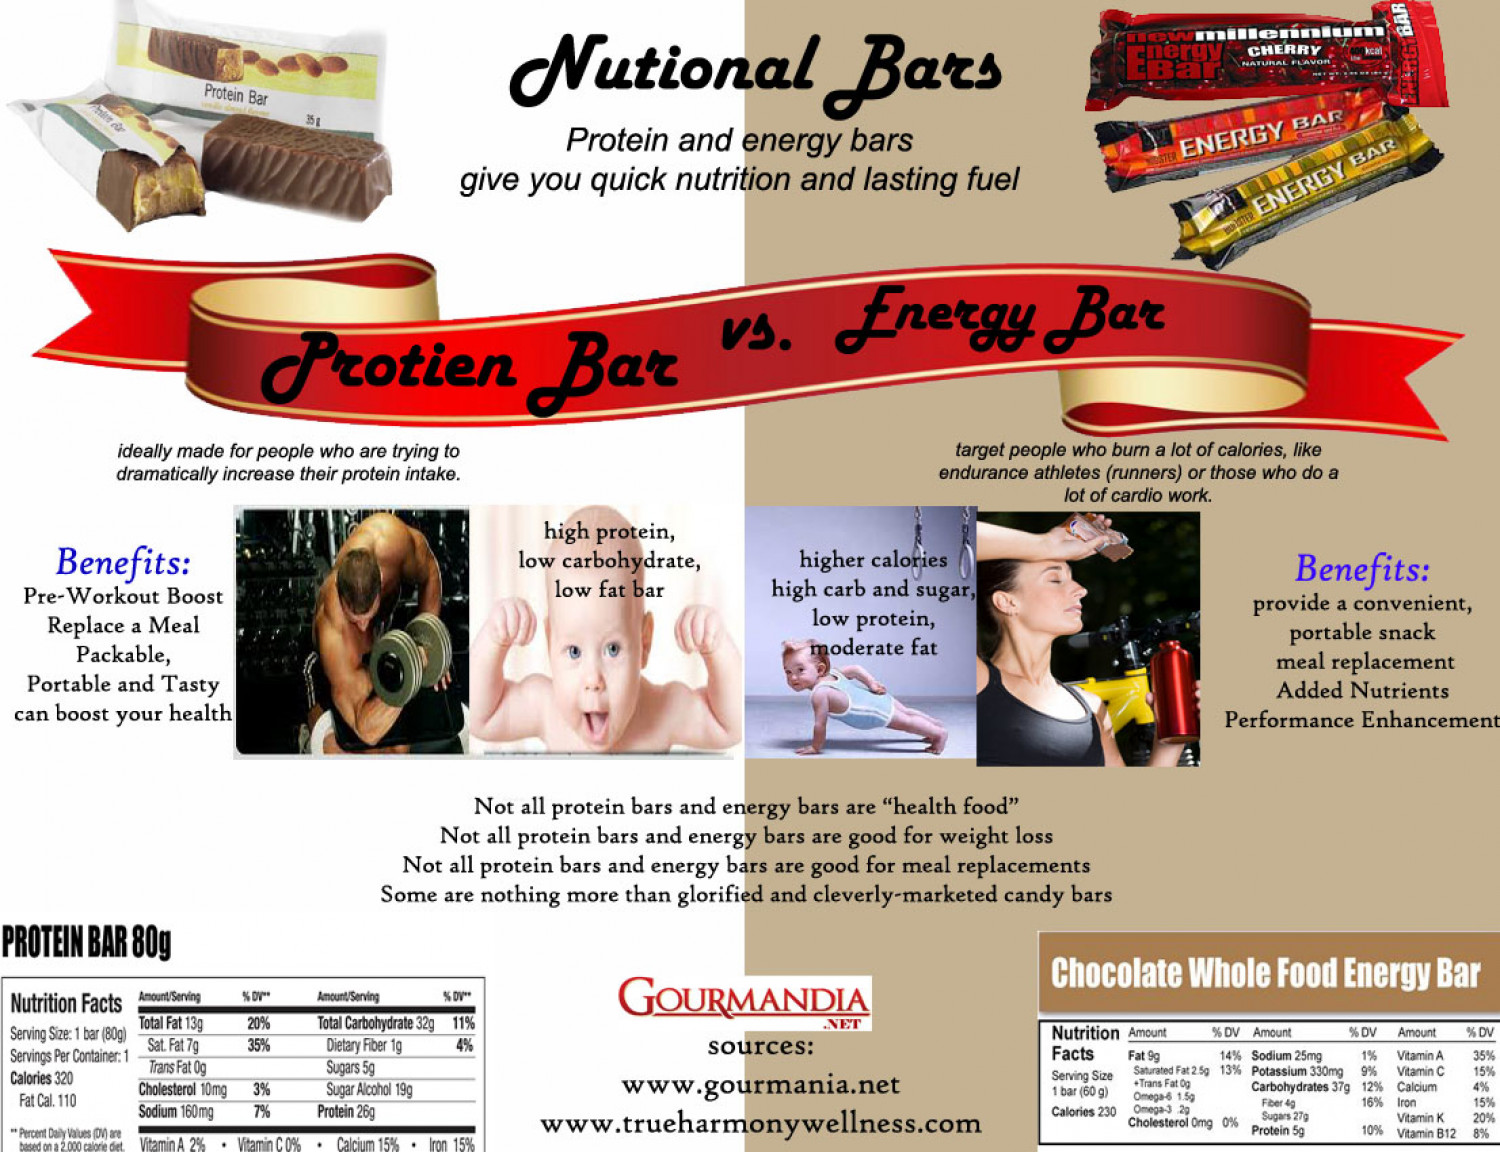 Nutritional Bar: Protein Bar vs. Energy Bar  Infographic